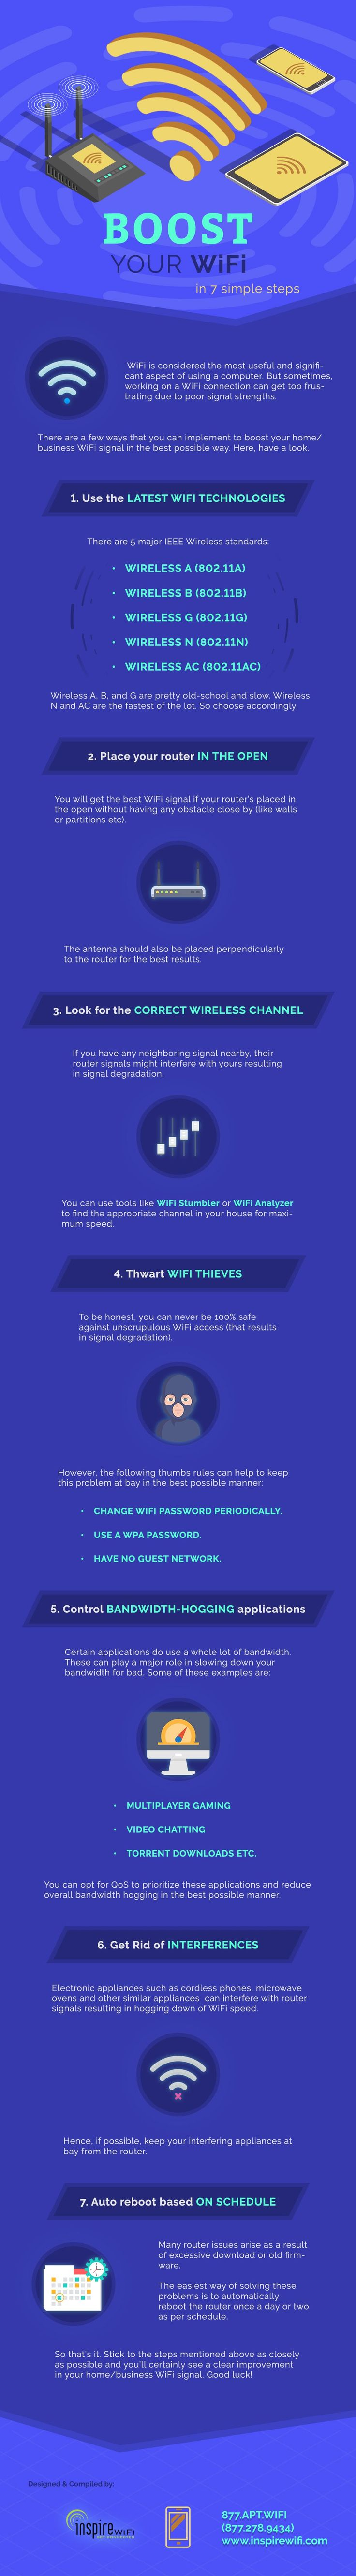 7 Simple Steps To Boost Your WiFi - #Infographic